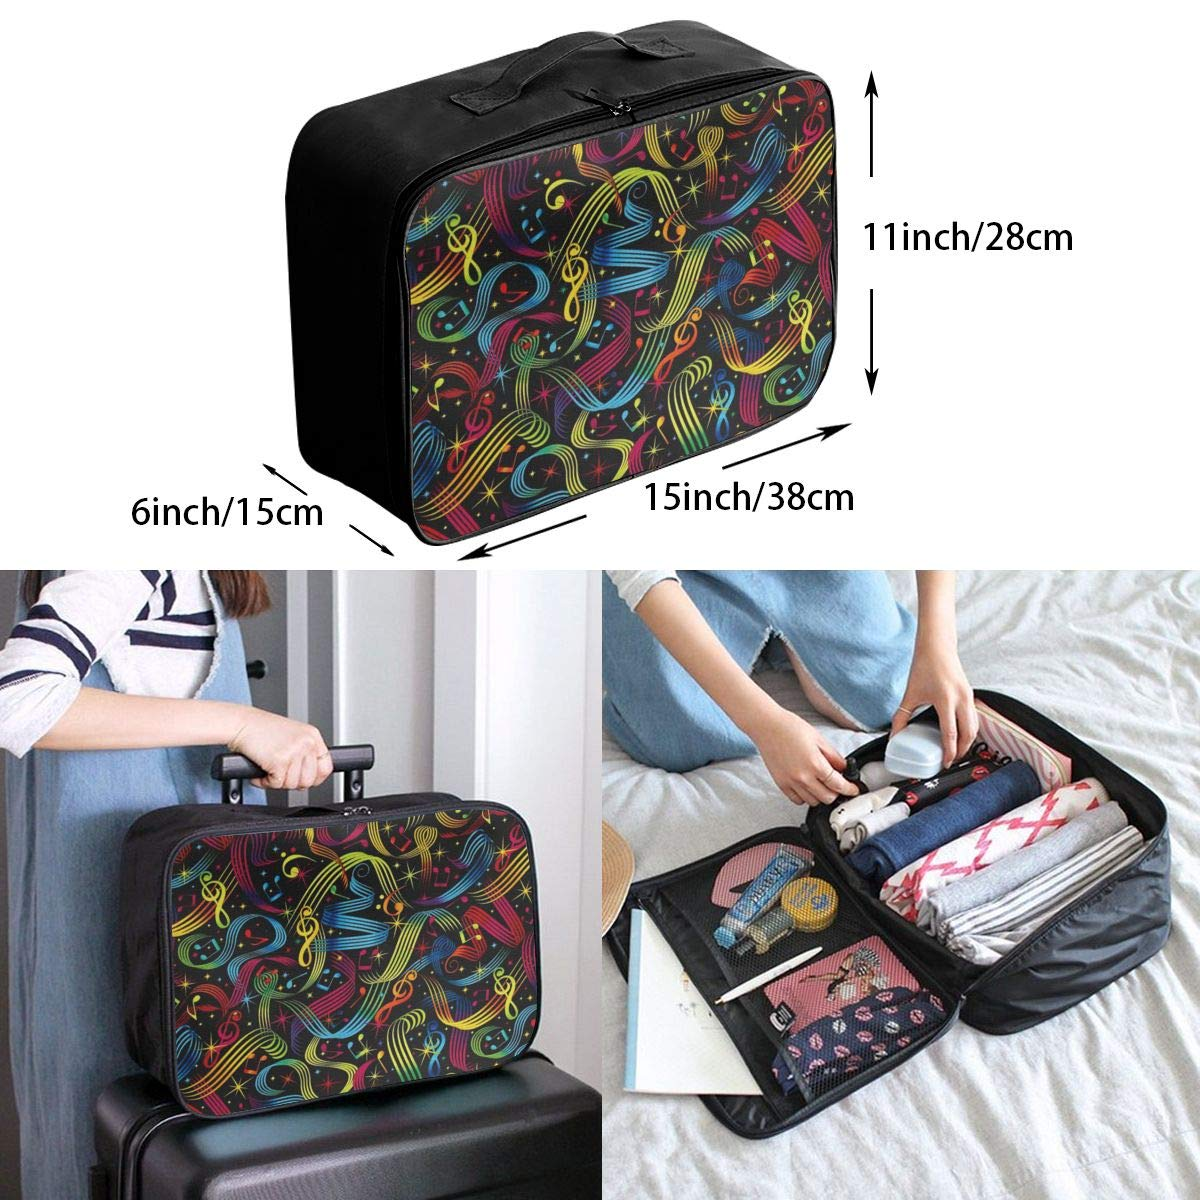 Lightweight Large Capacity Duffel Portable Luggage Bag Rock On Bright Music Notes Travel Waterproof Foldable Storage Carry Tote Bag